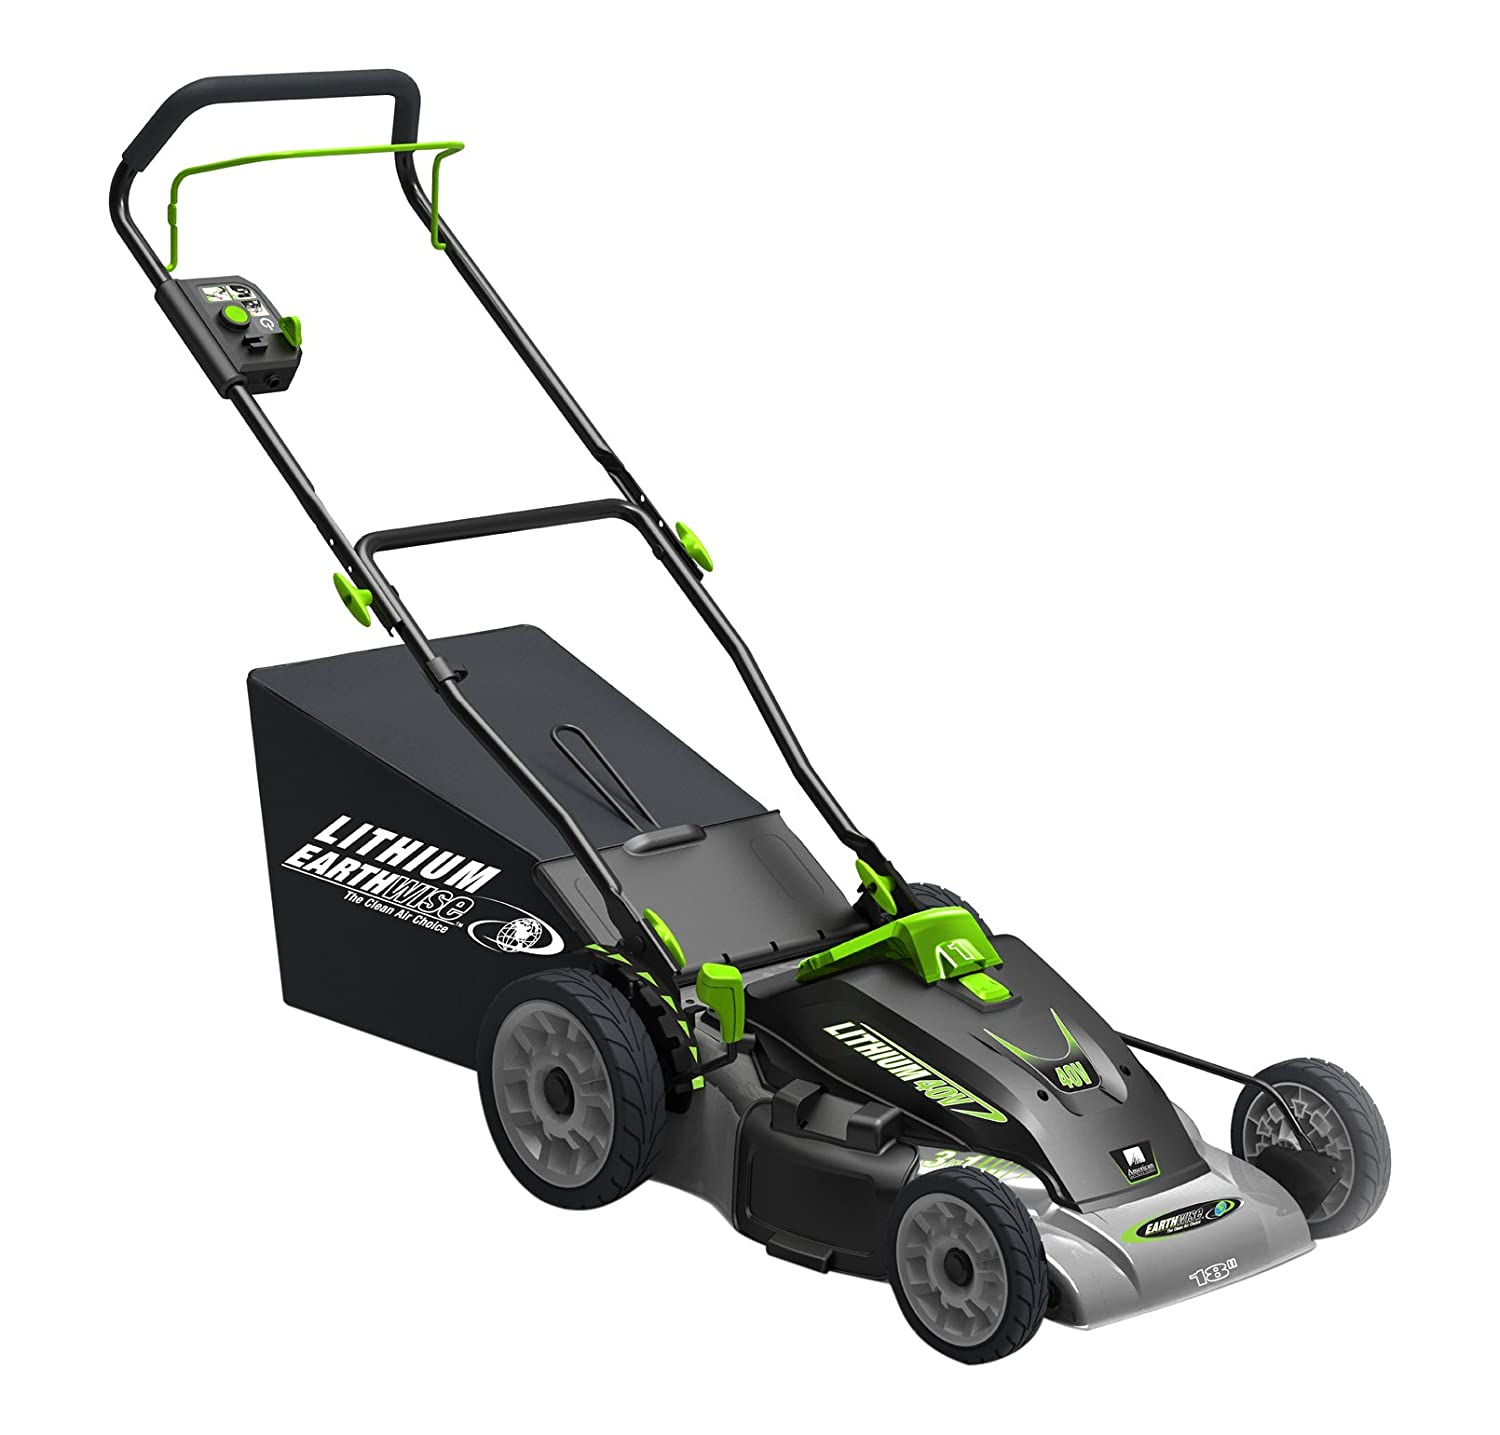 "Earthwise 60418 Lithium Ion Electric Lawn Mower, 18"", 40-Volt Cordless 18"""